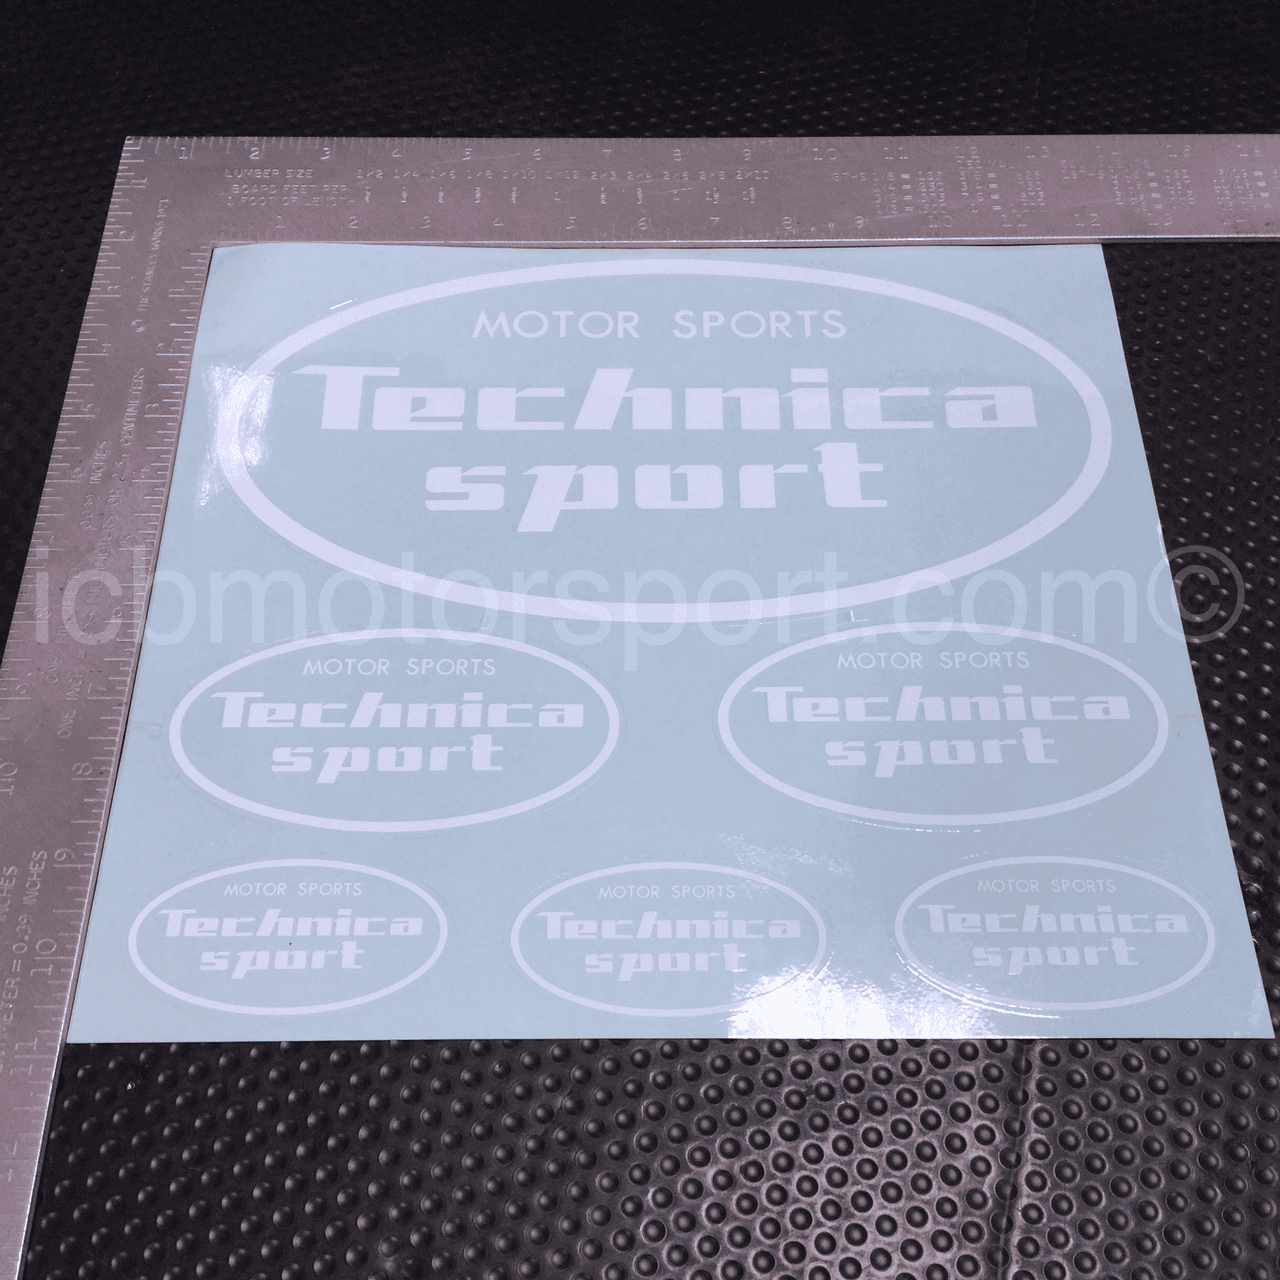 Vision Technica Motor Sports Technica Sport decal sheet